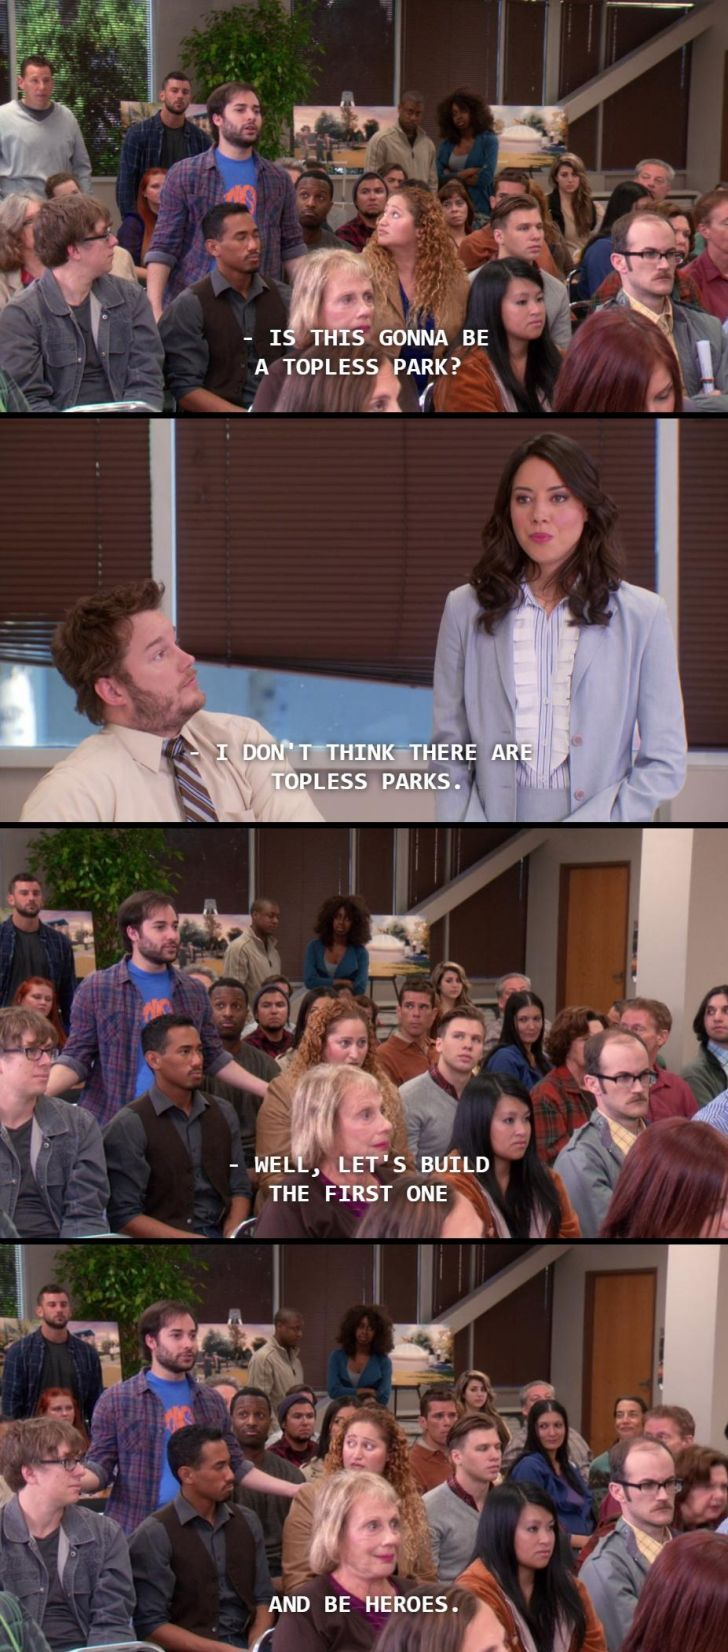 My favorite Harris Wittels moment from Parks and Rec